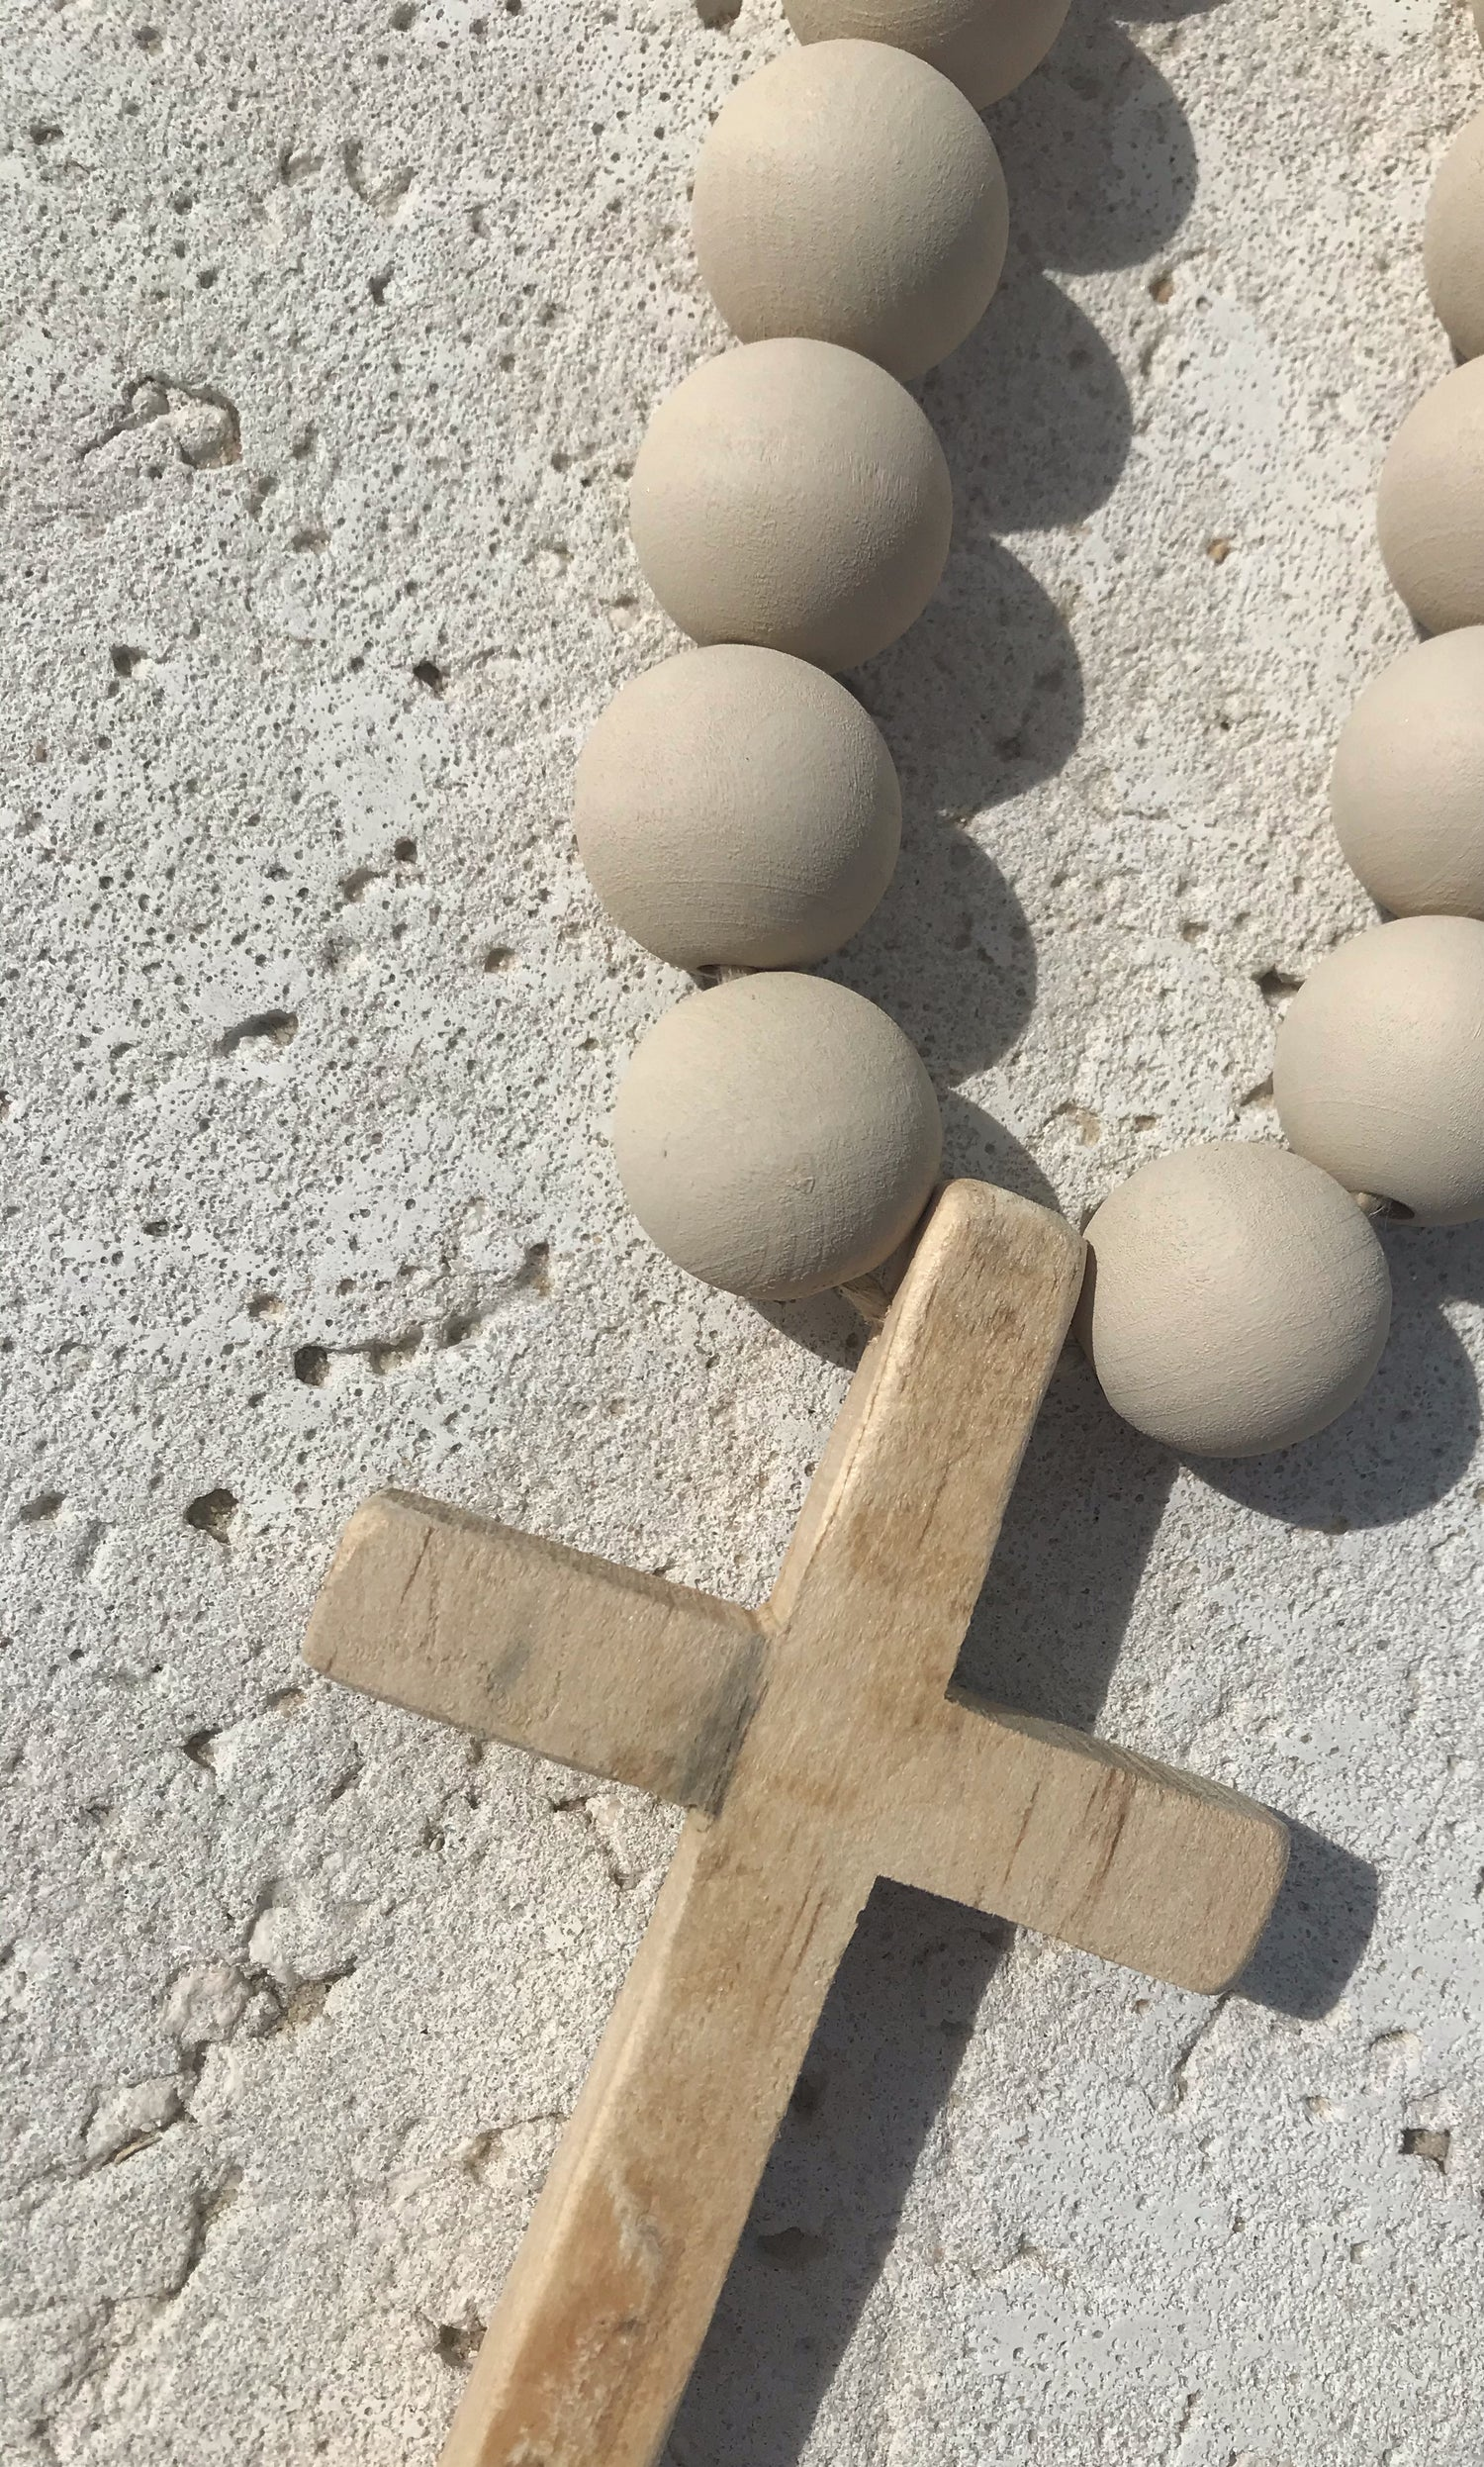 Image of Mini Beads in Stone with Wooden Cross